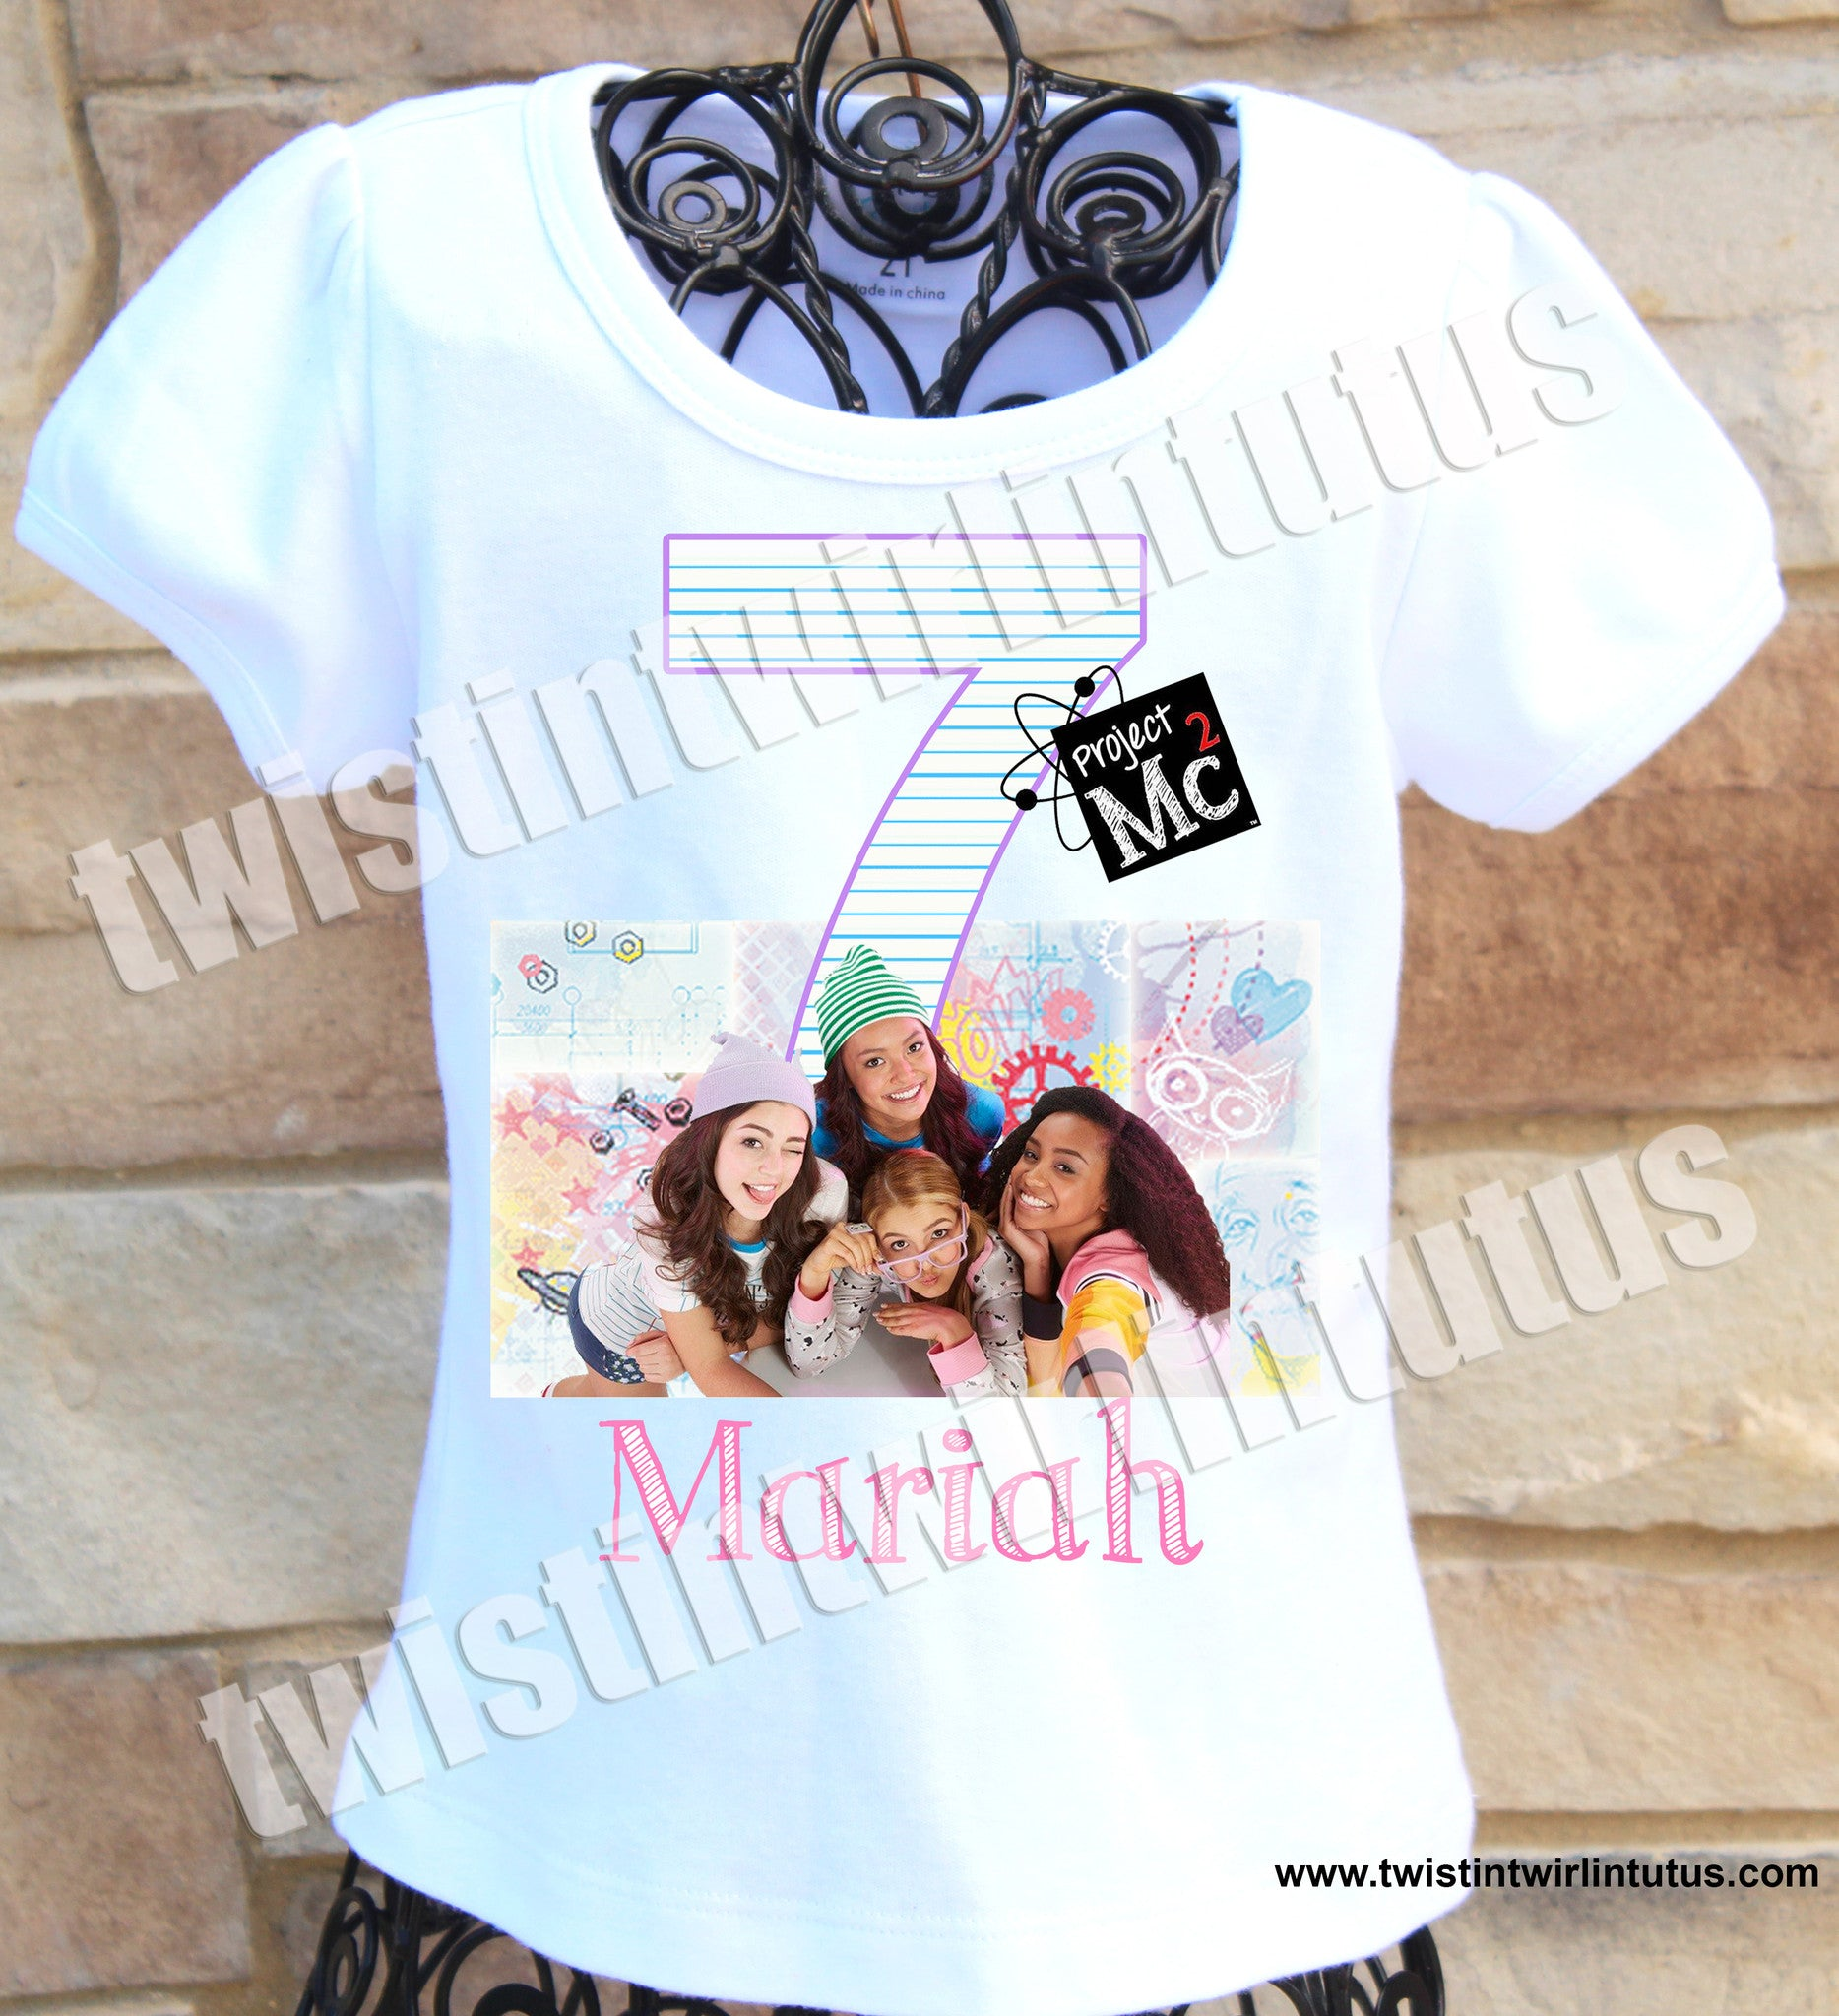 Project MC2 birthday shirt